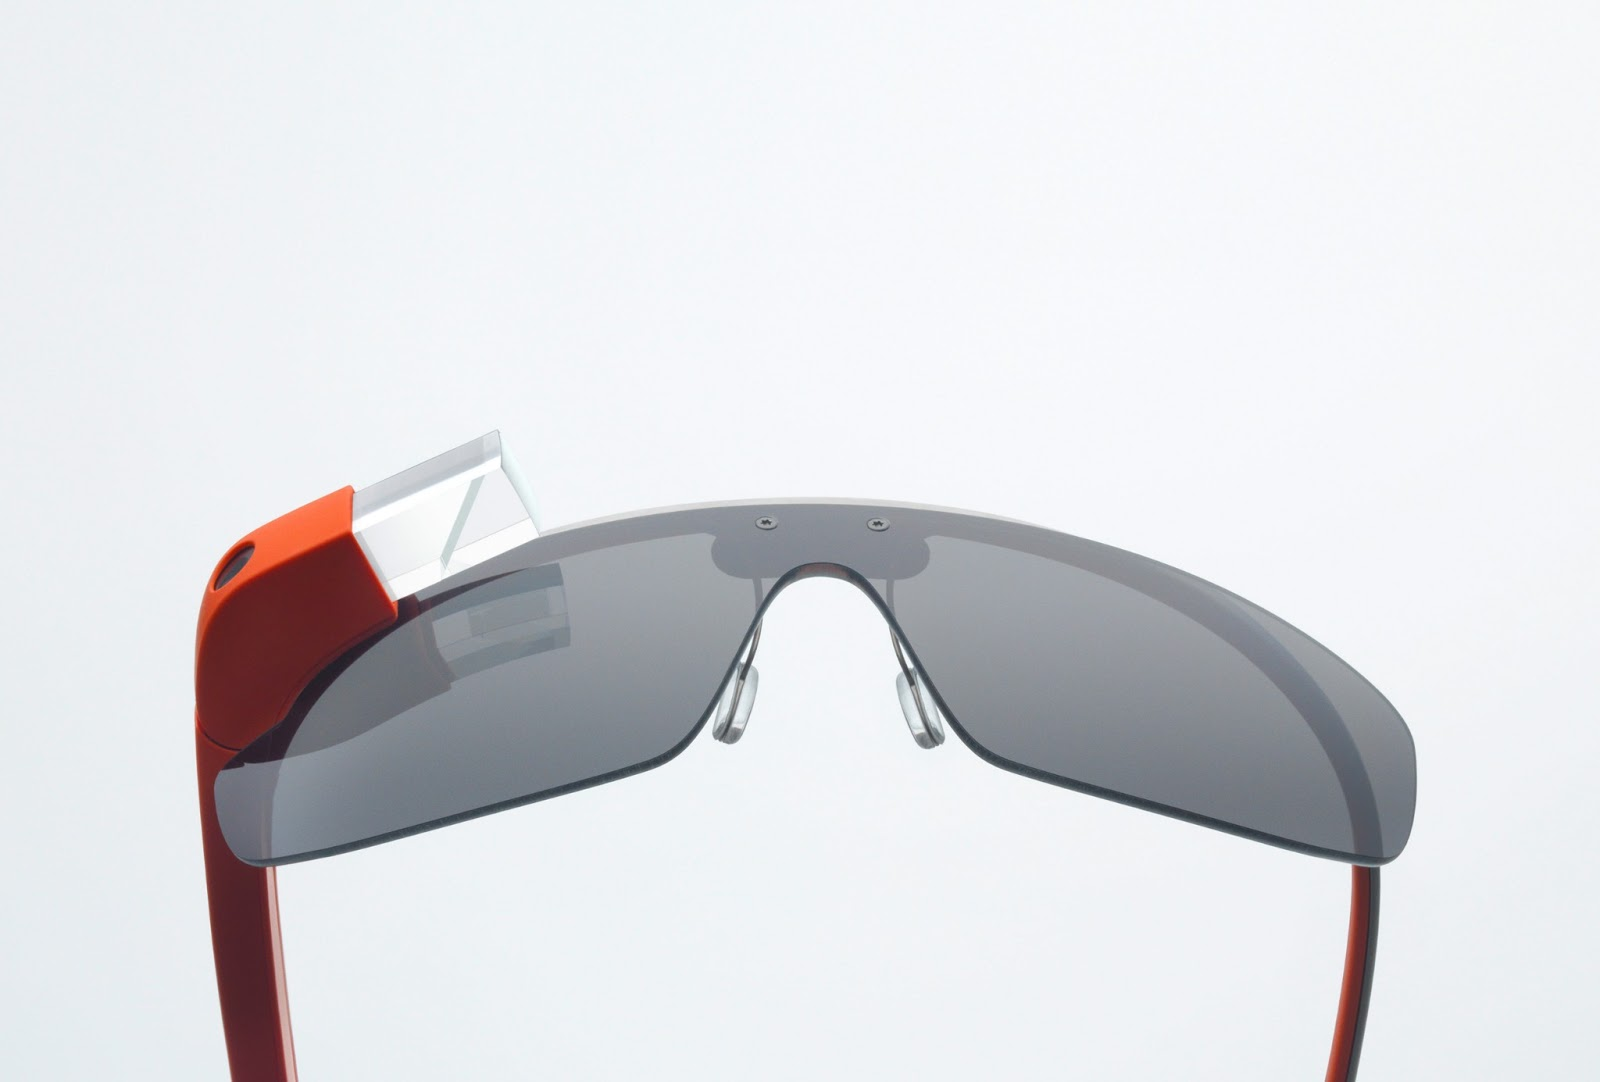 Google Glass Explorer Edition Version 2 : Orange